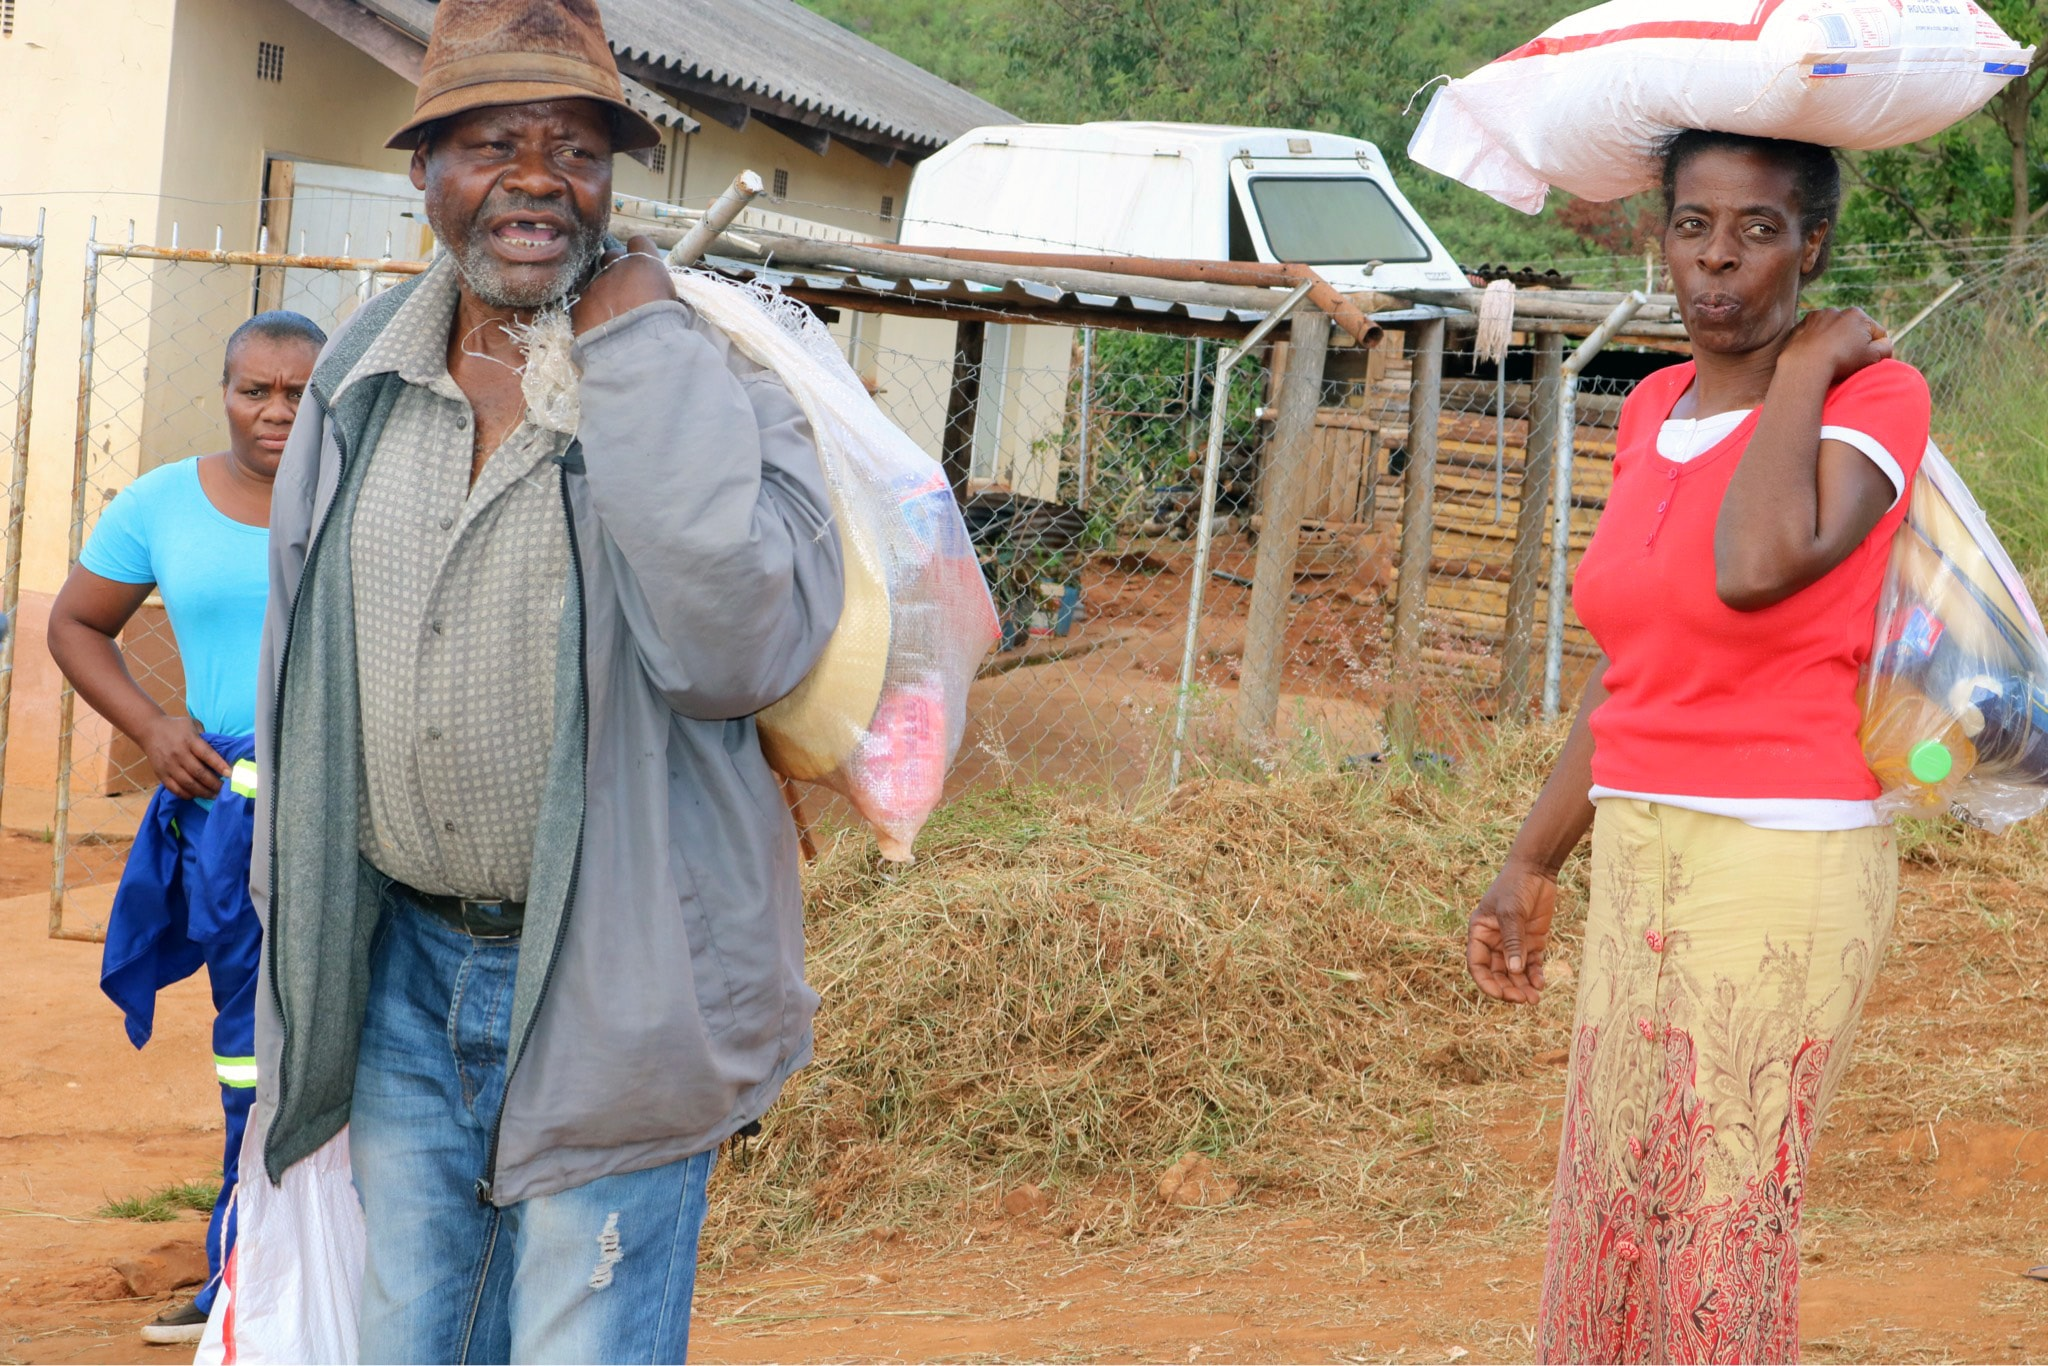 Cyclone Idai survivor Phillip Mushiri, 78, carries food and other supplies handed out by The United Methodist Church in Ngangu, Zimbabwe. Photo by Priscilla Muzerengwa, UMNS.